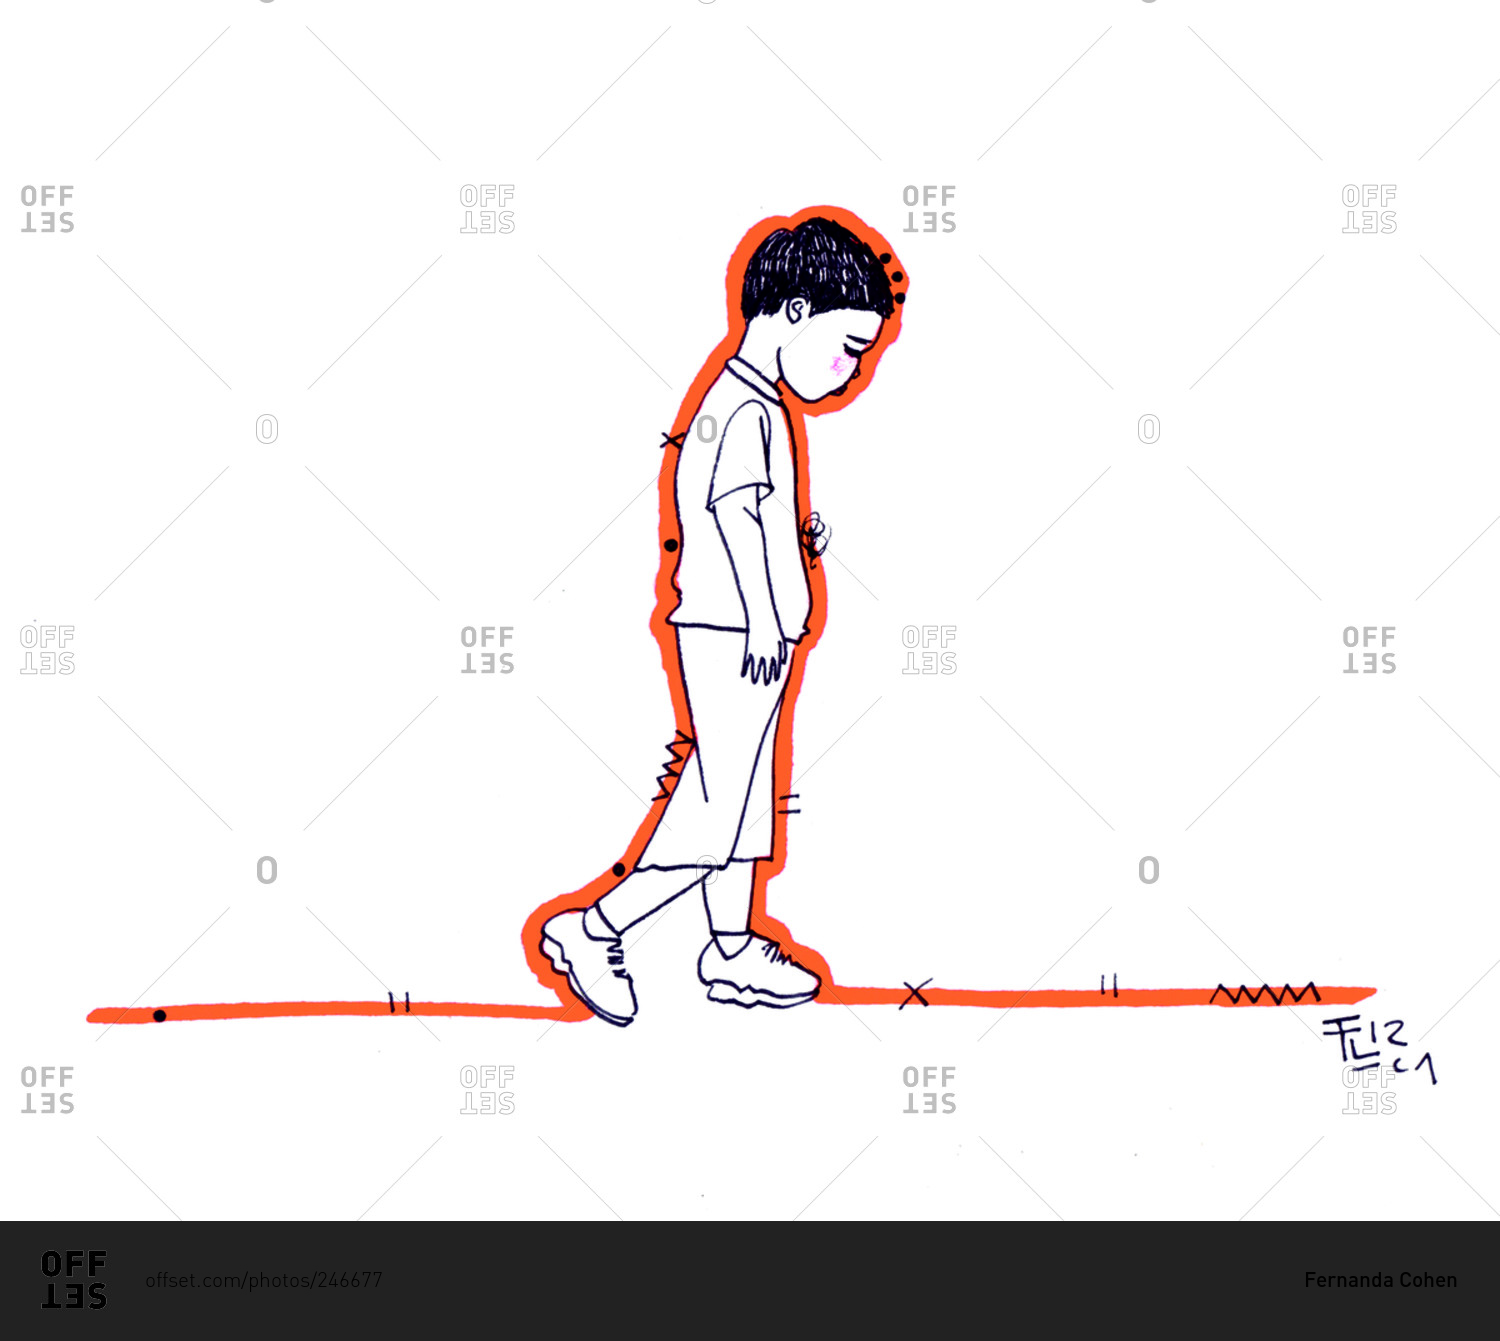 Sad boy walking alone stock photo - OFFSET